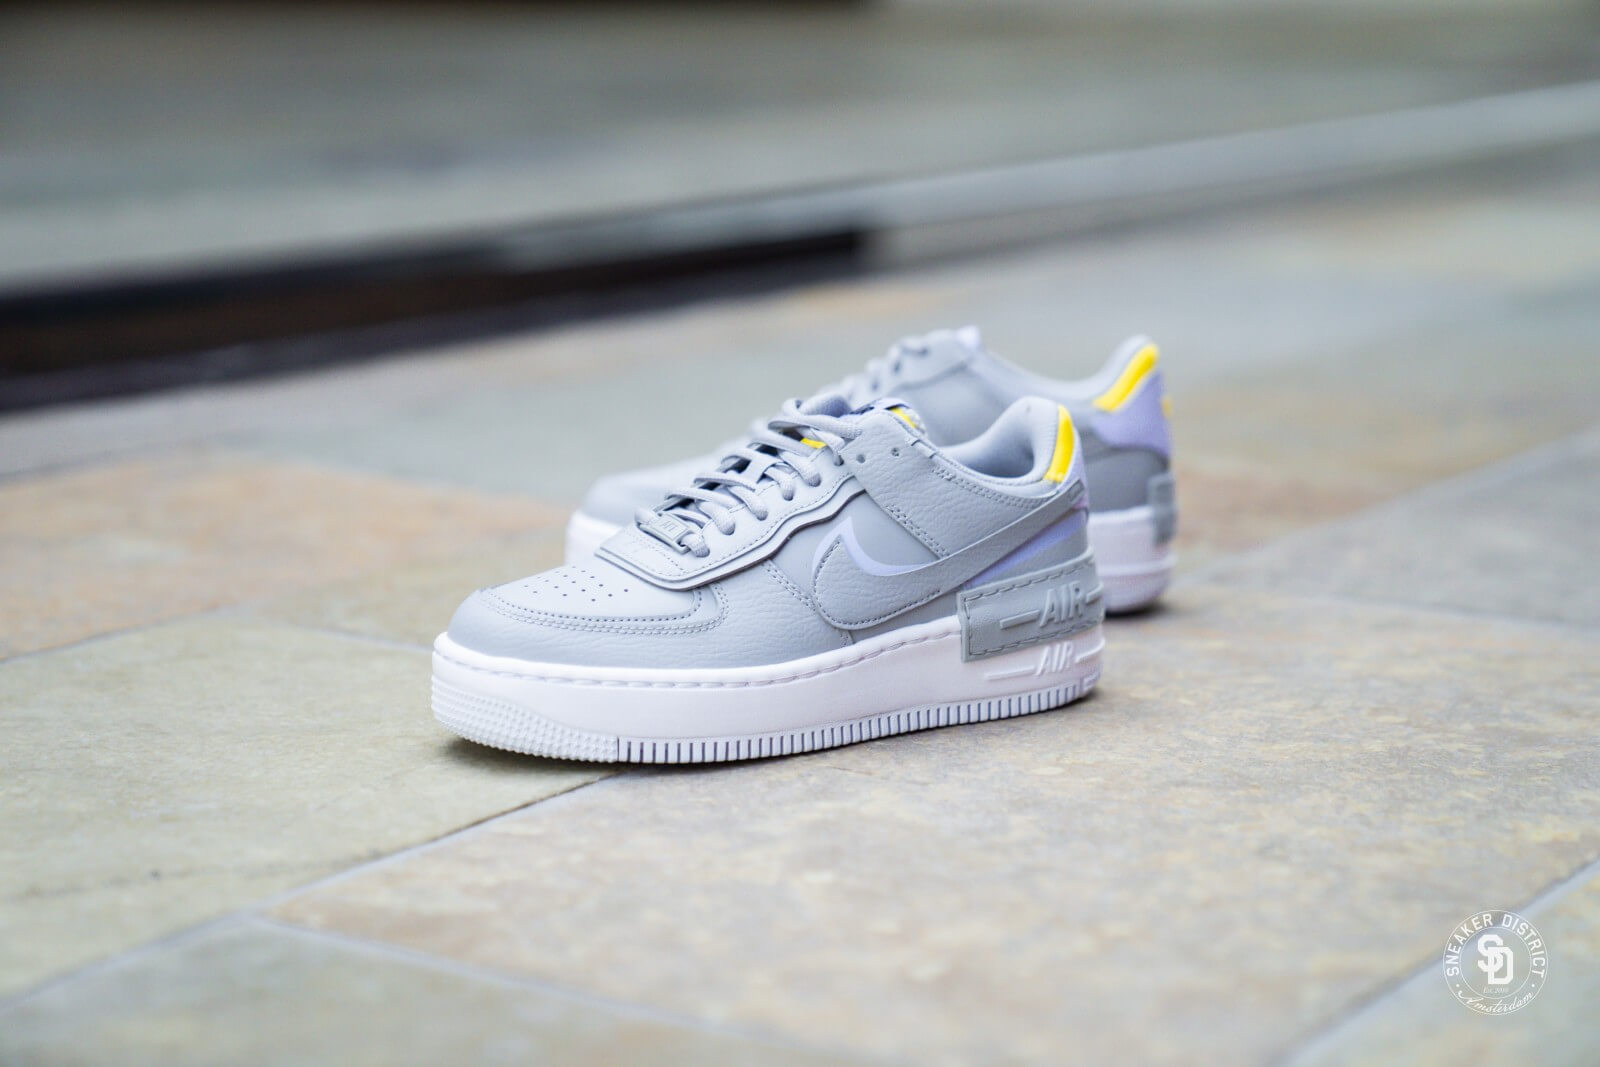 Nike Women S Air Force 1 Shadow Wolf Grey Lavender Mist Ci0919 002 This sneaker reflects this ethos in its design with double the swoosh, double the height and double the force. nike women s air force 1 shadow wolf grey lavender mist